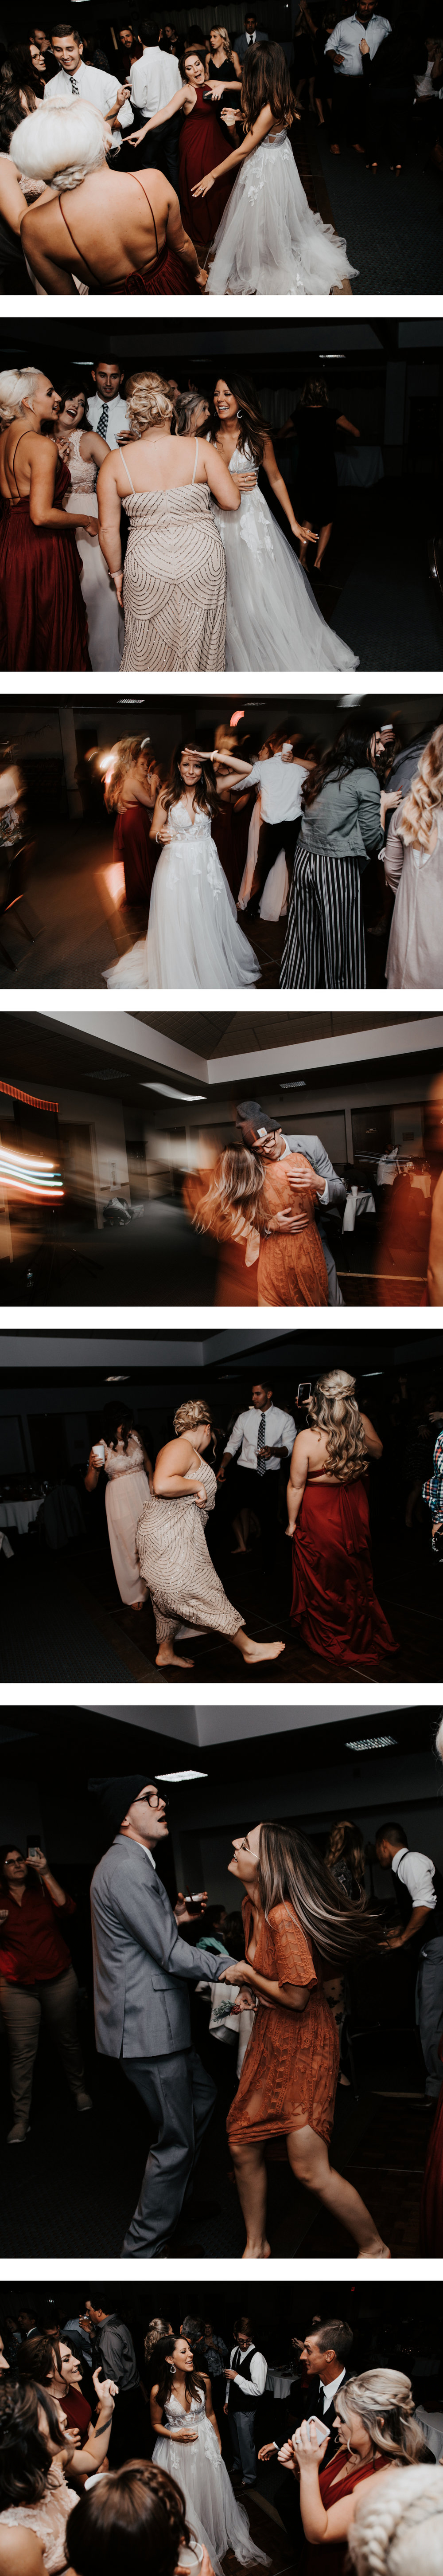 The Pollack Wedding 26.jpg